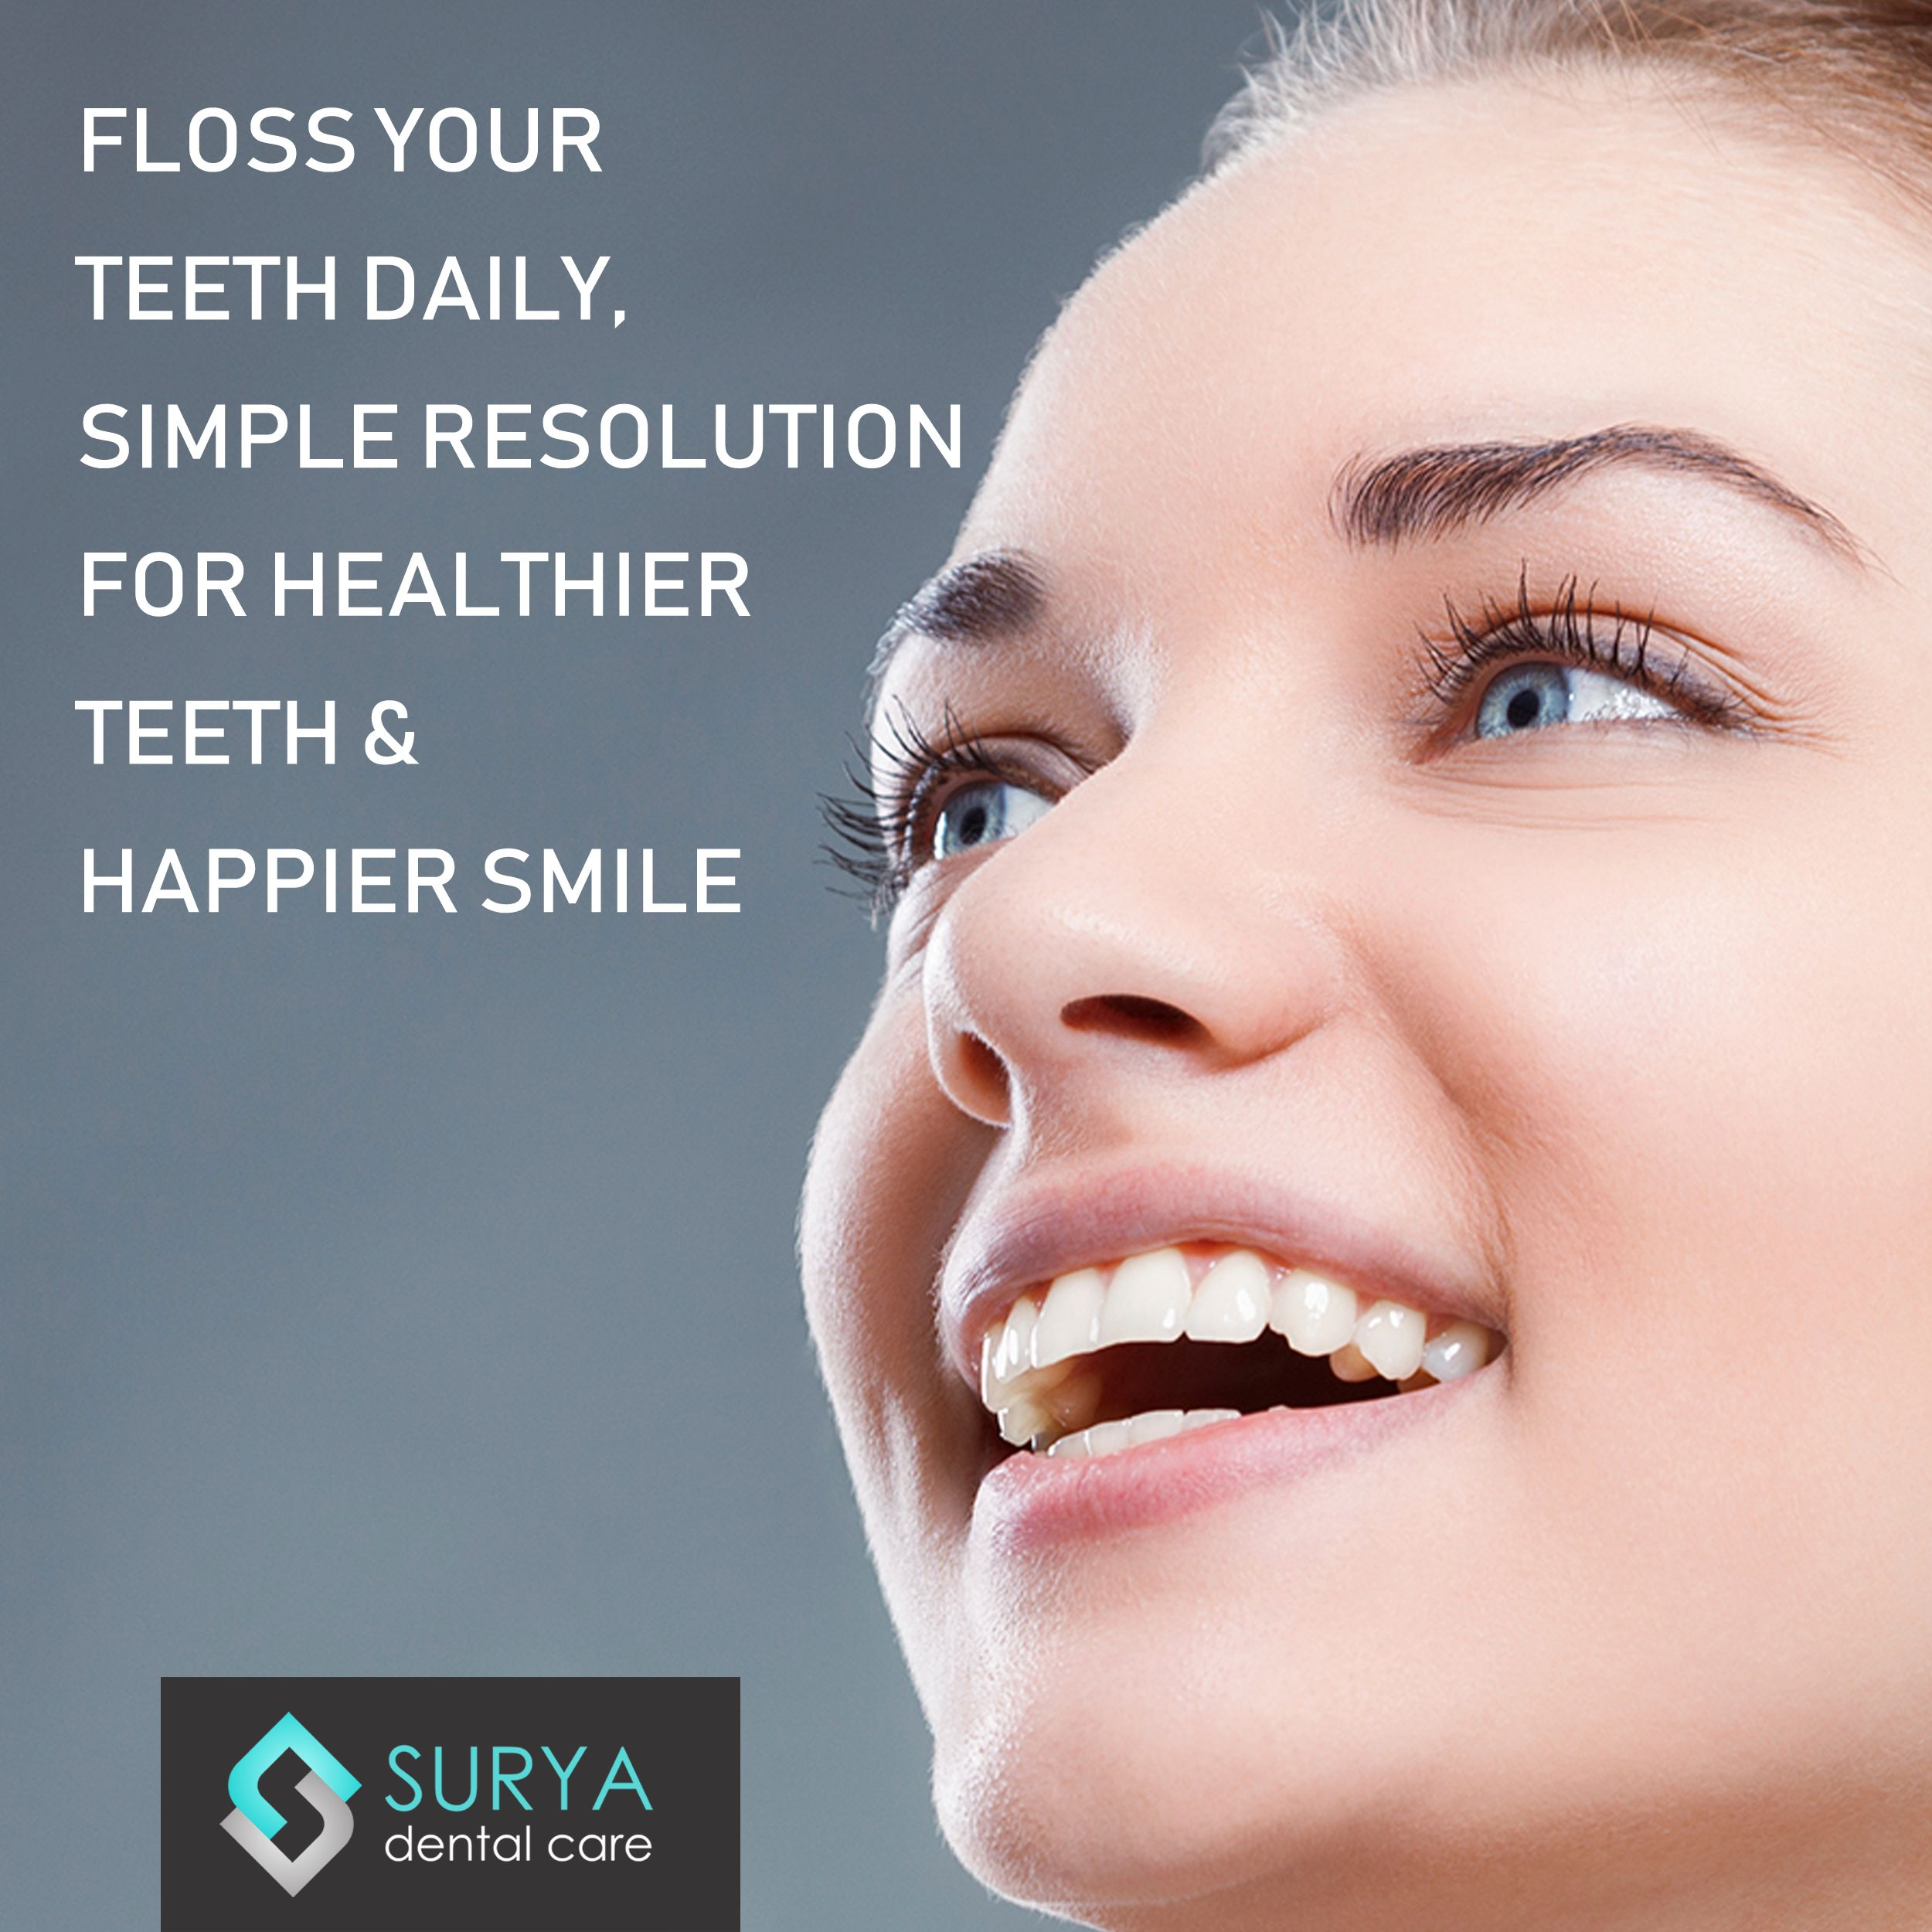 Flossing is the other oral habit that is powerful to